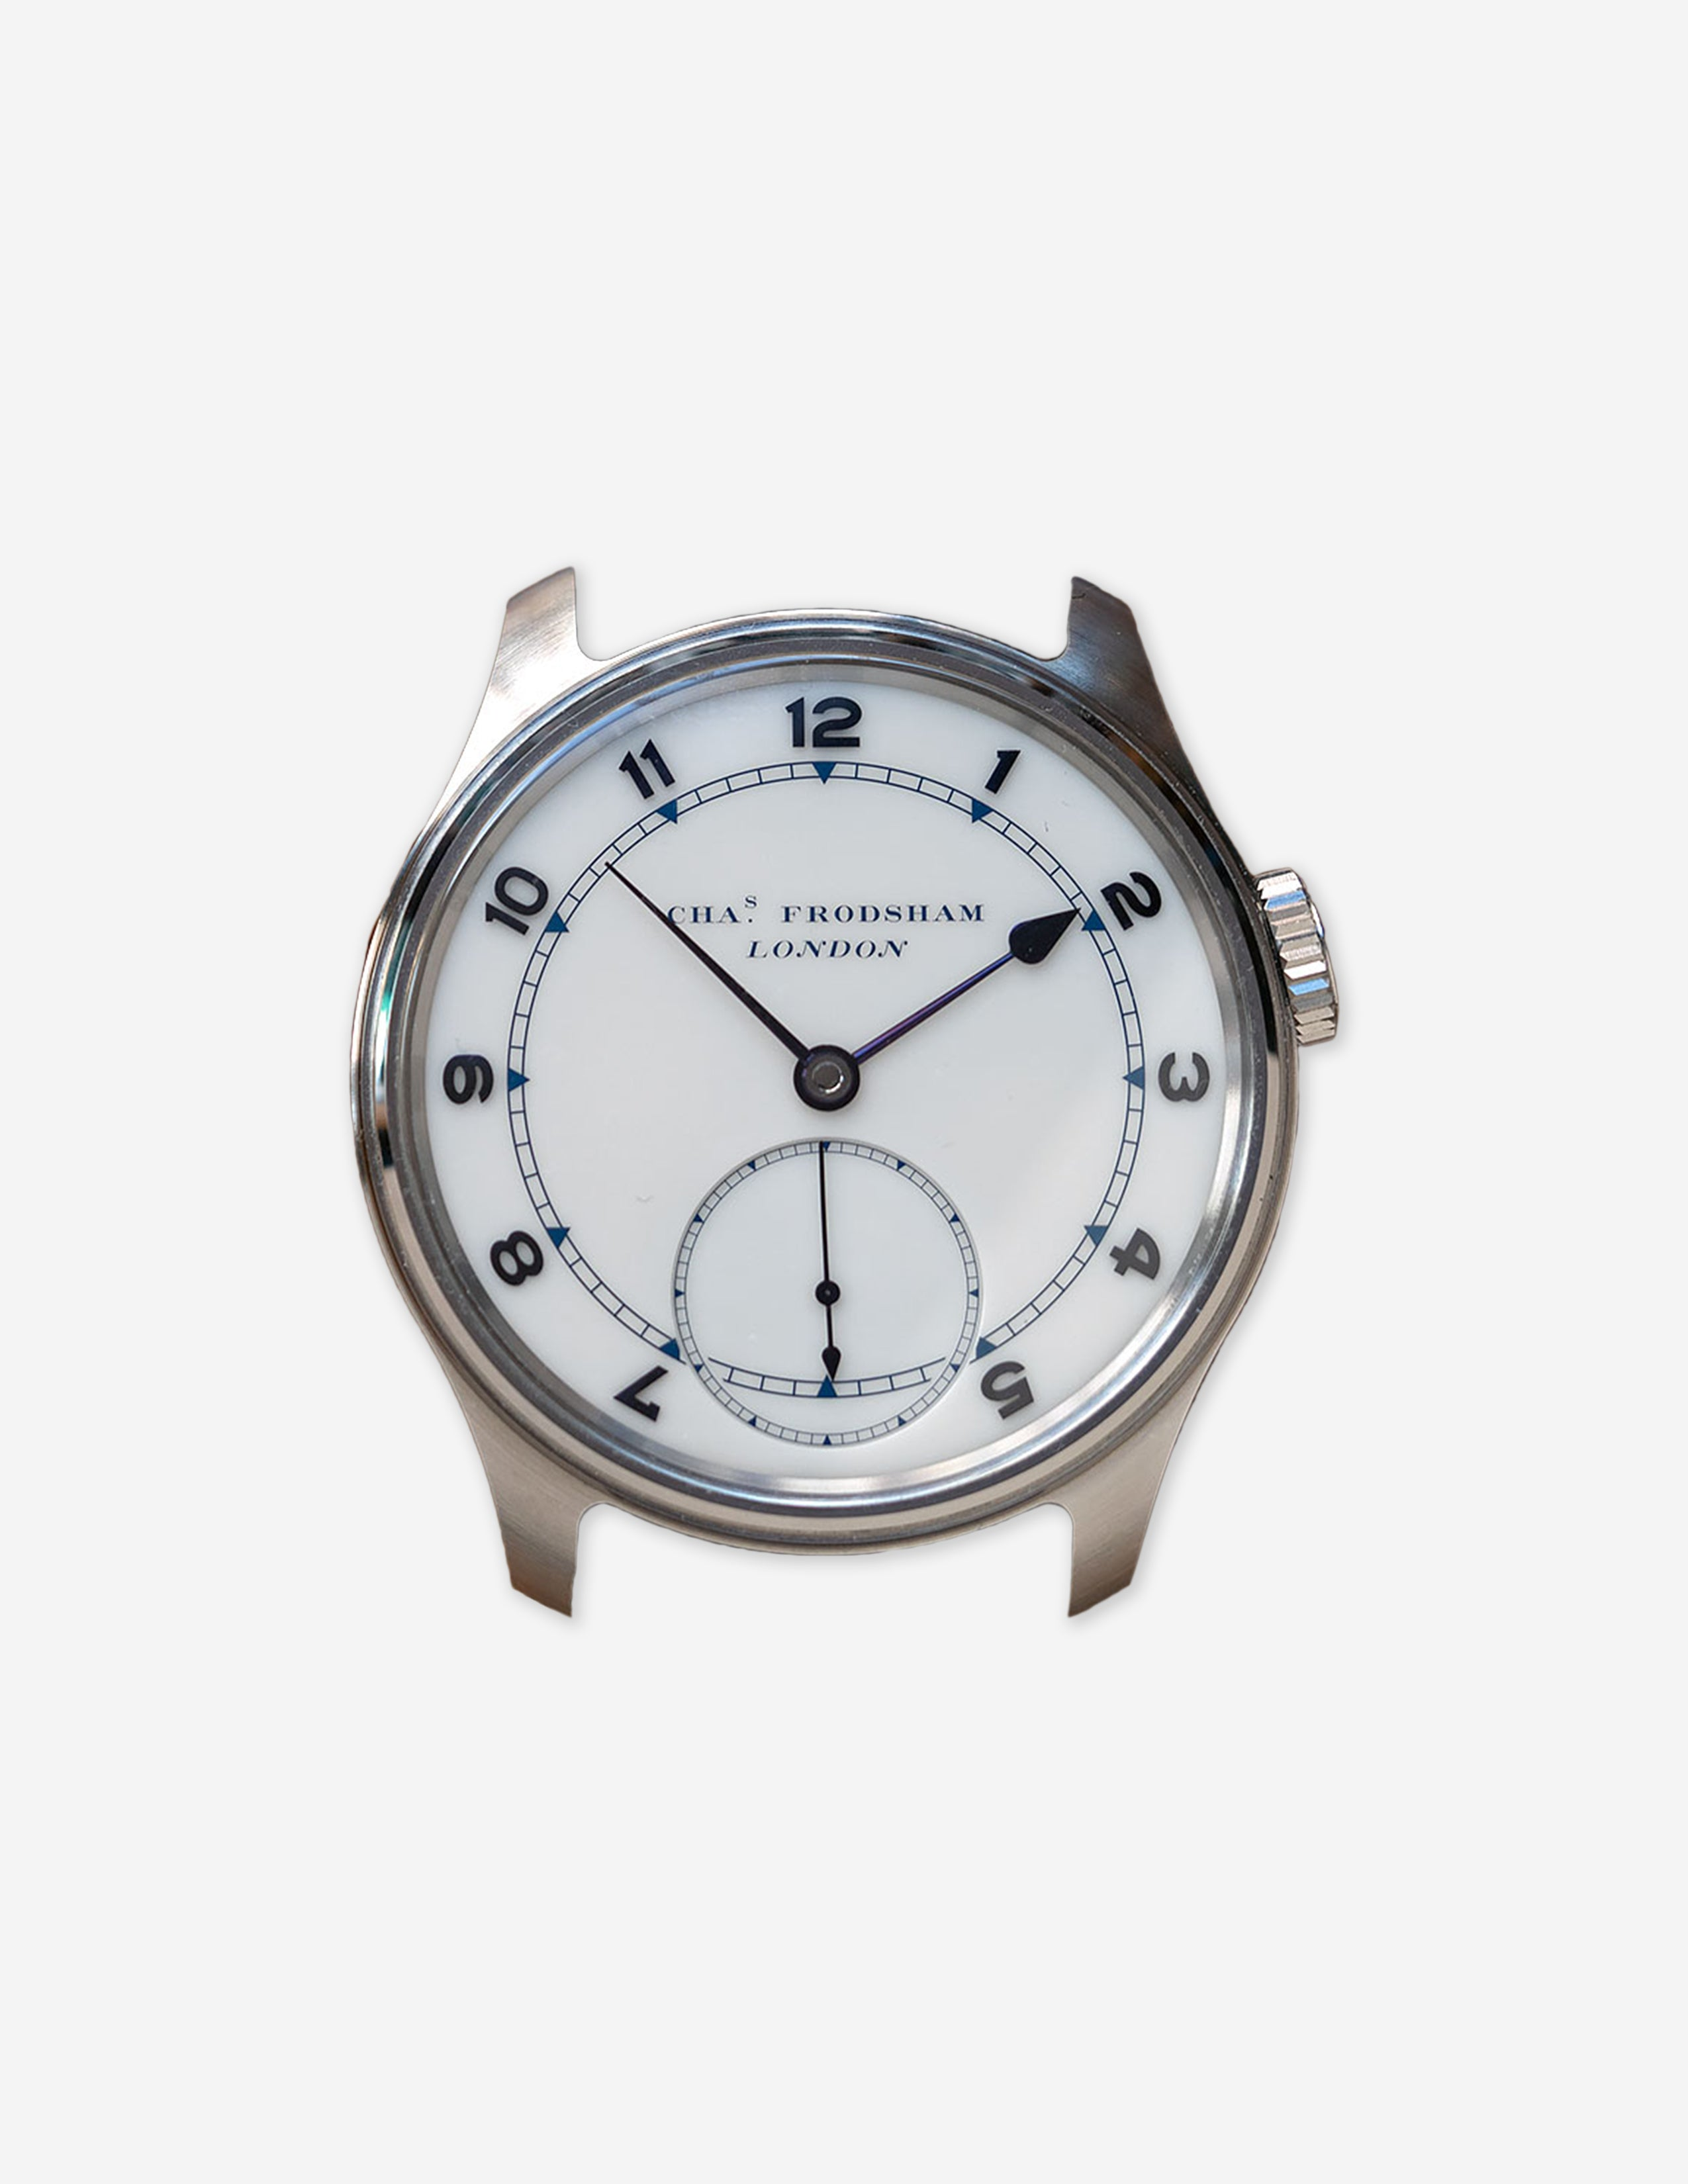 The Frodsham Double Impulse Chronometer wristwatch for A Collected Man London